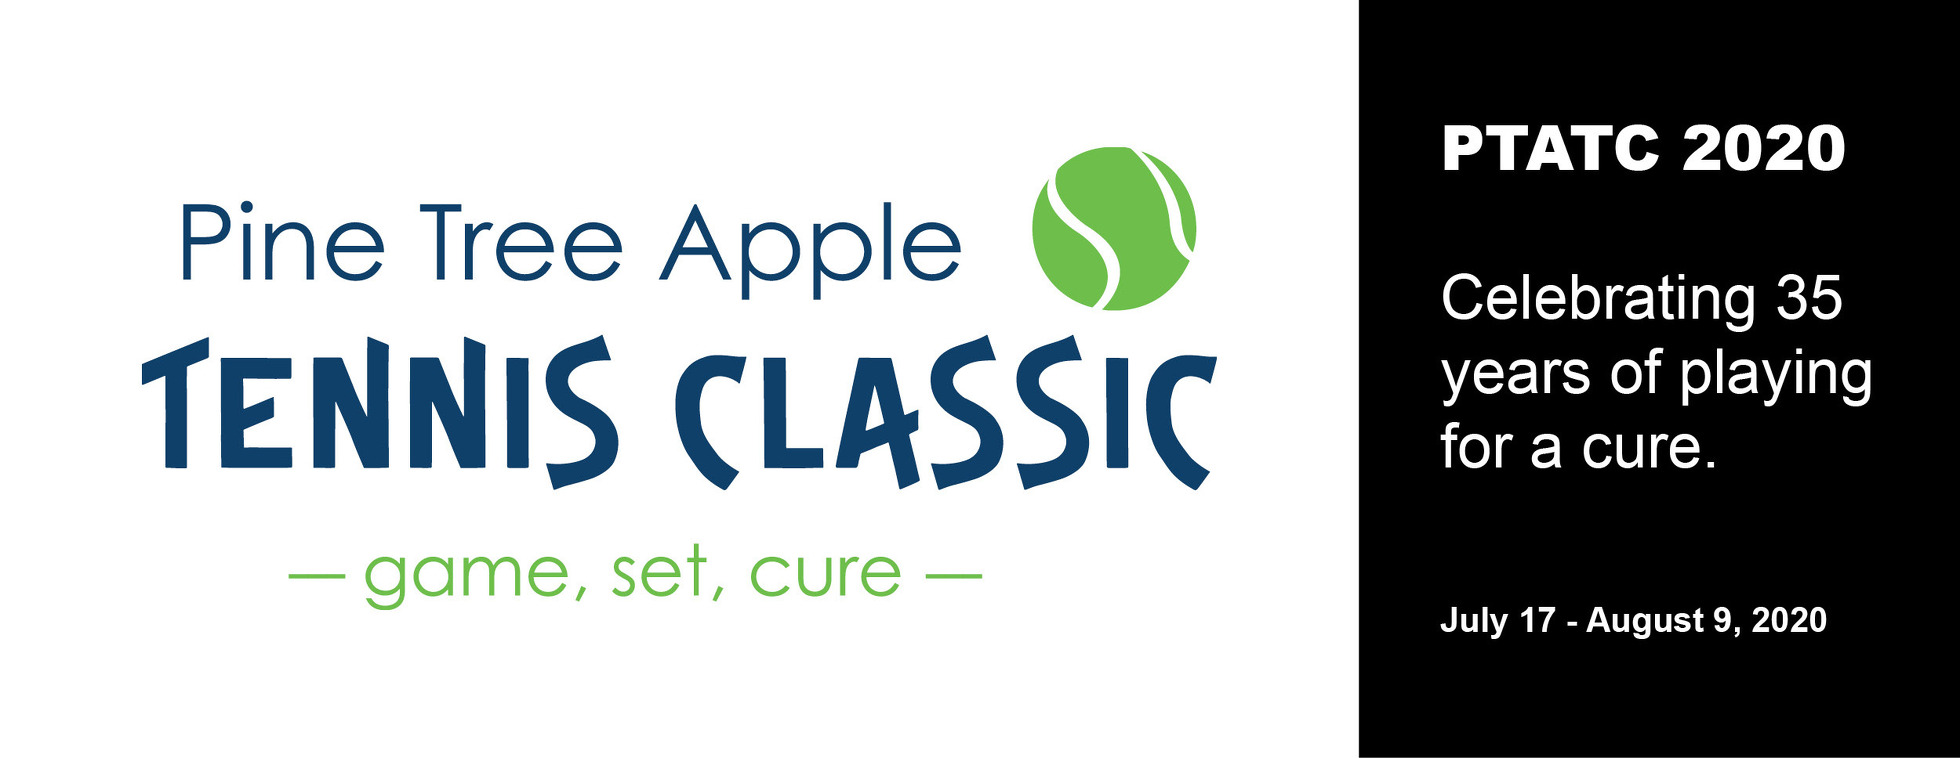 Pine Tree Apple Tennis Classic 2020